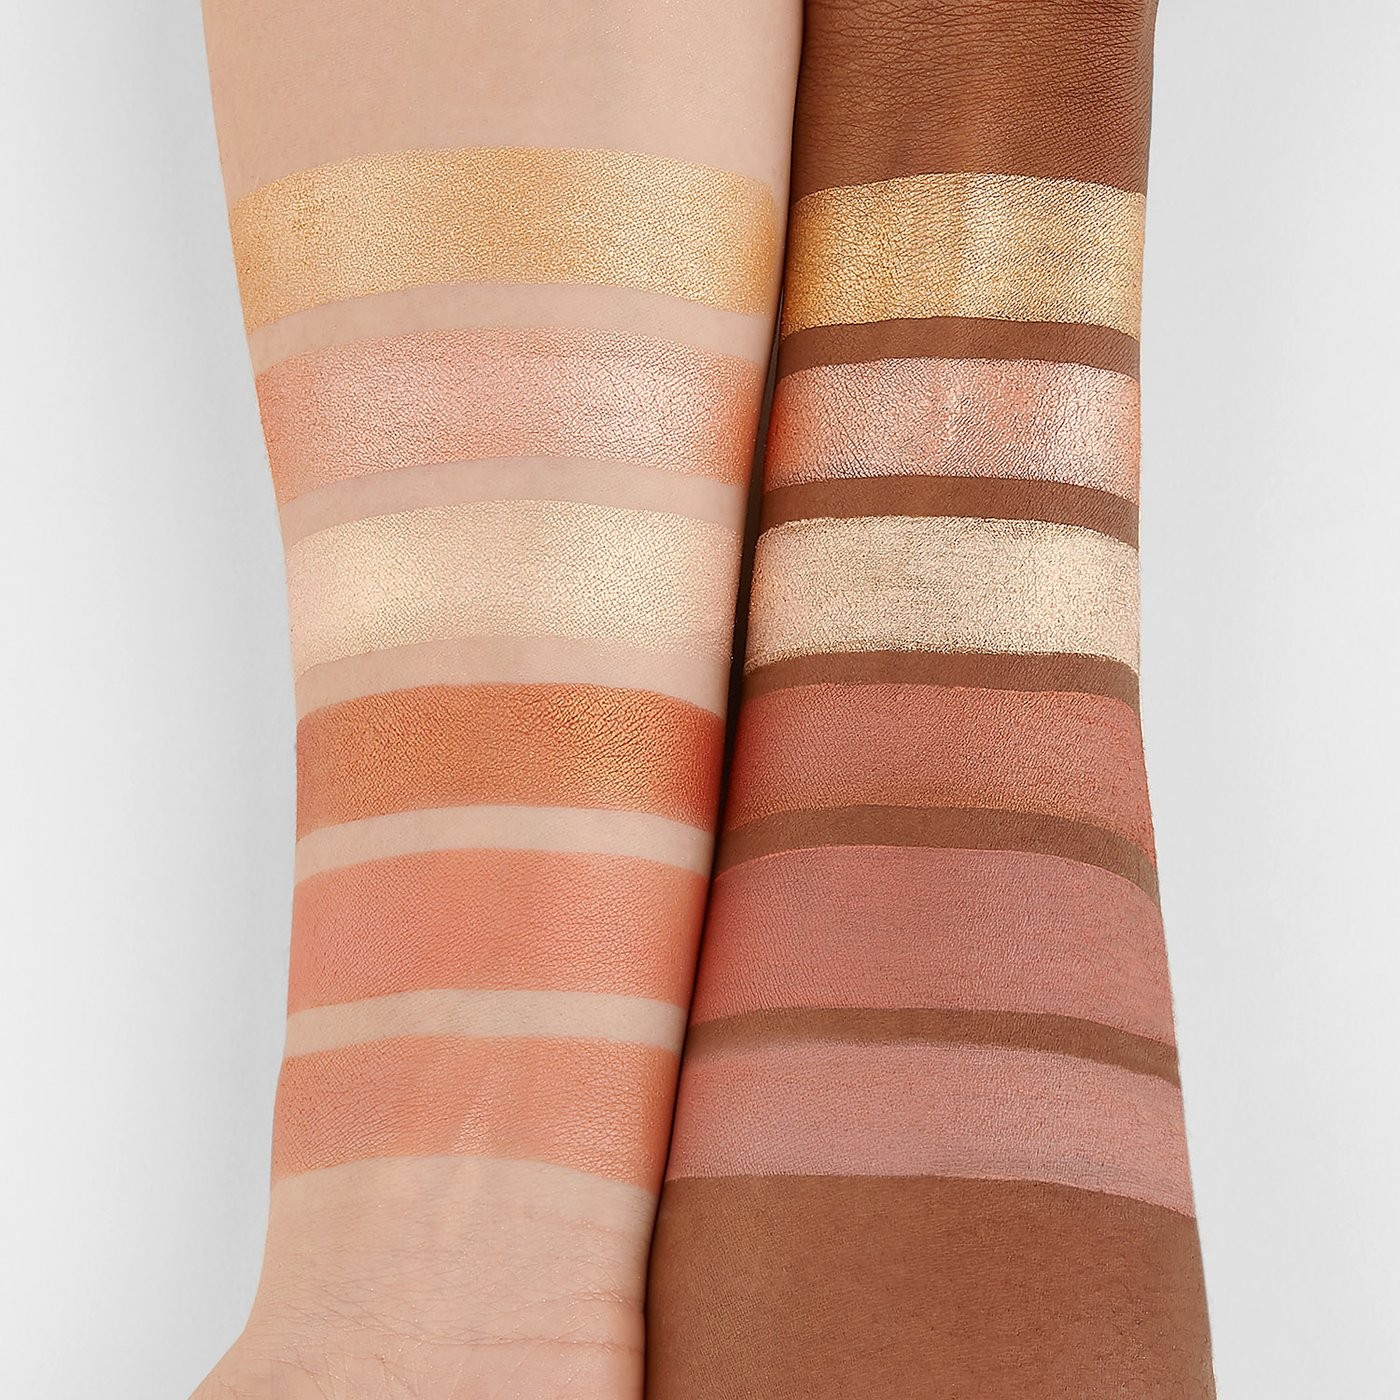 Blush- & Highlighter-Palette - Glowing In Greece - 6 Color Blush & Highlighter Palette